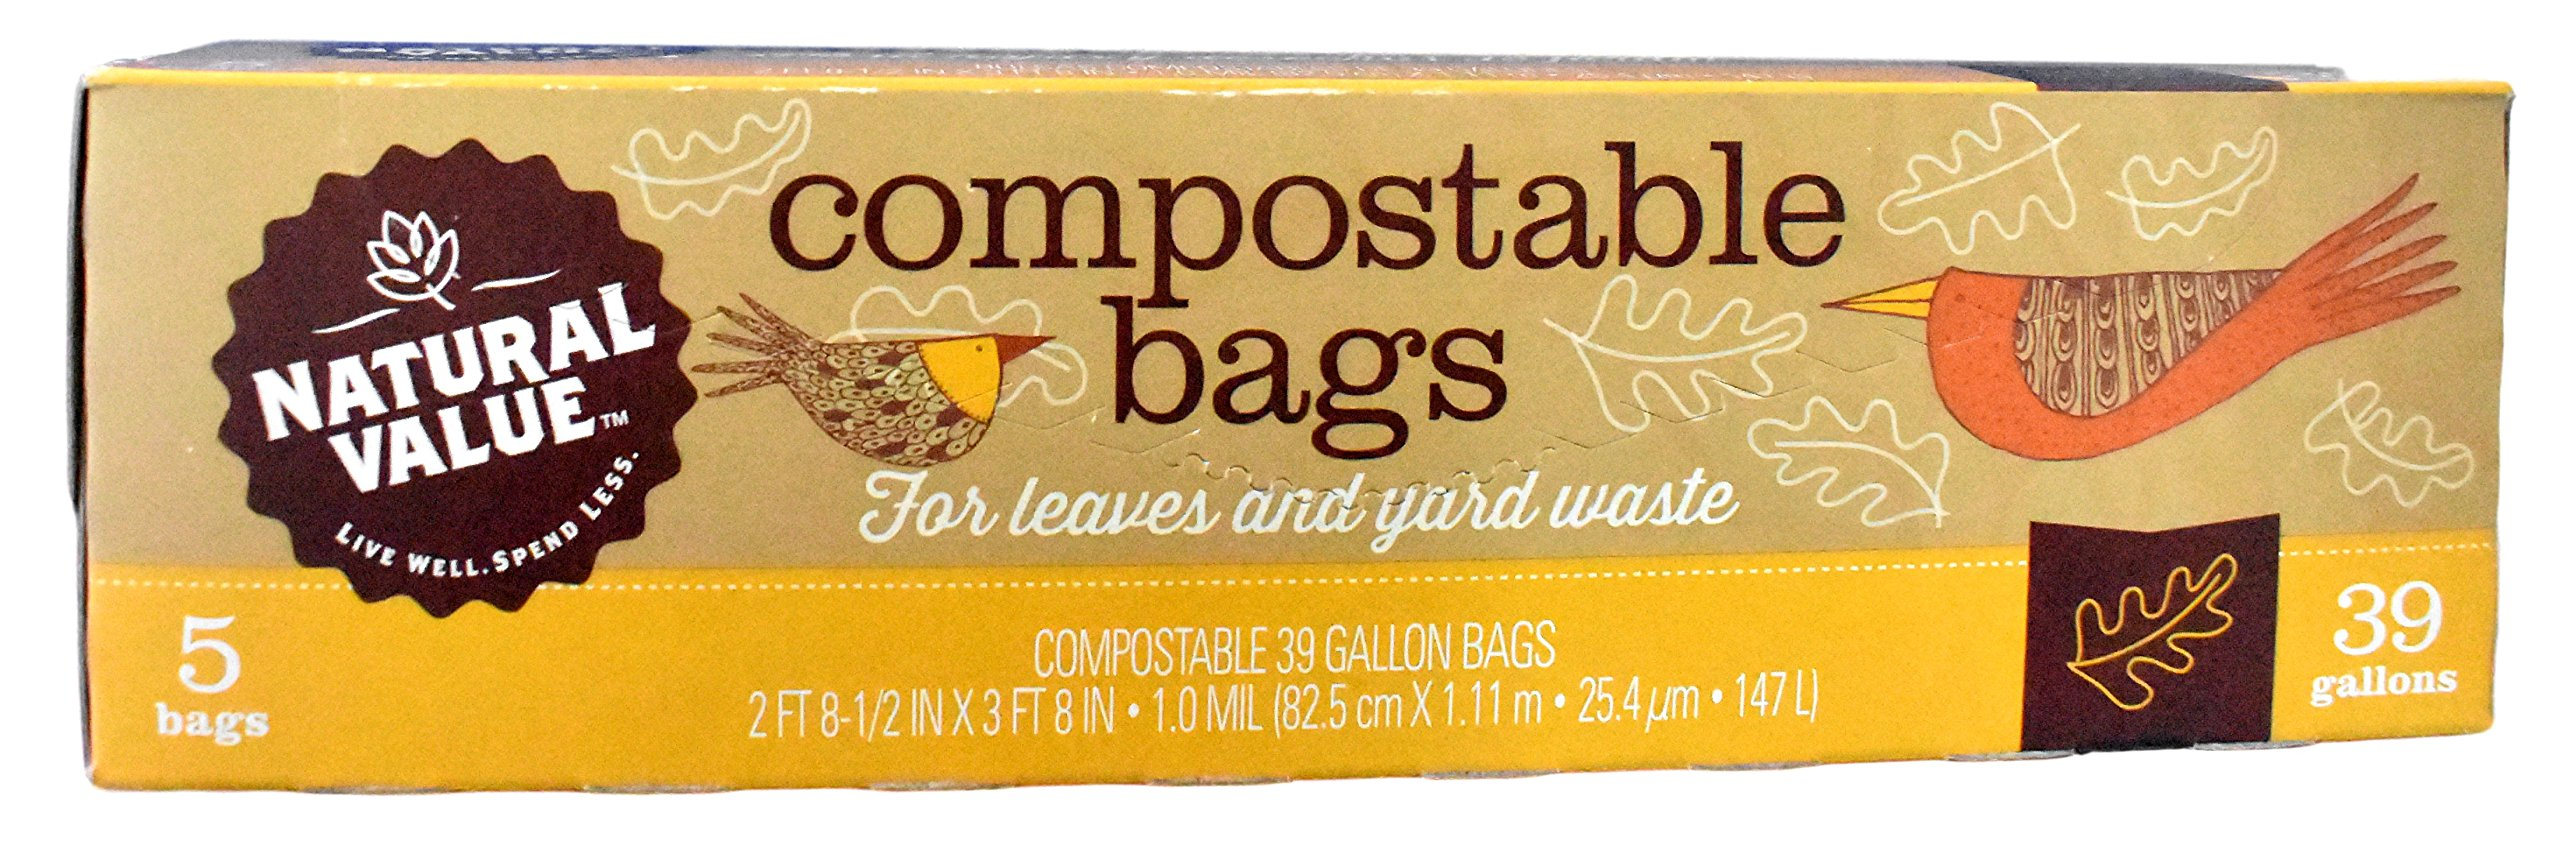 (Pack of 3) Natural Value - Compostable Yard Bags - 39 Gallon - 5 Bags